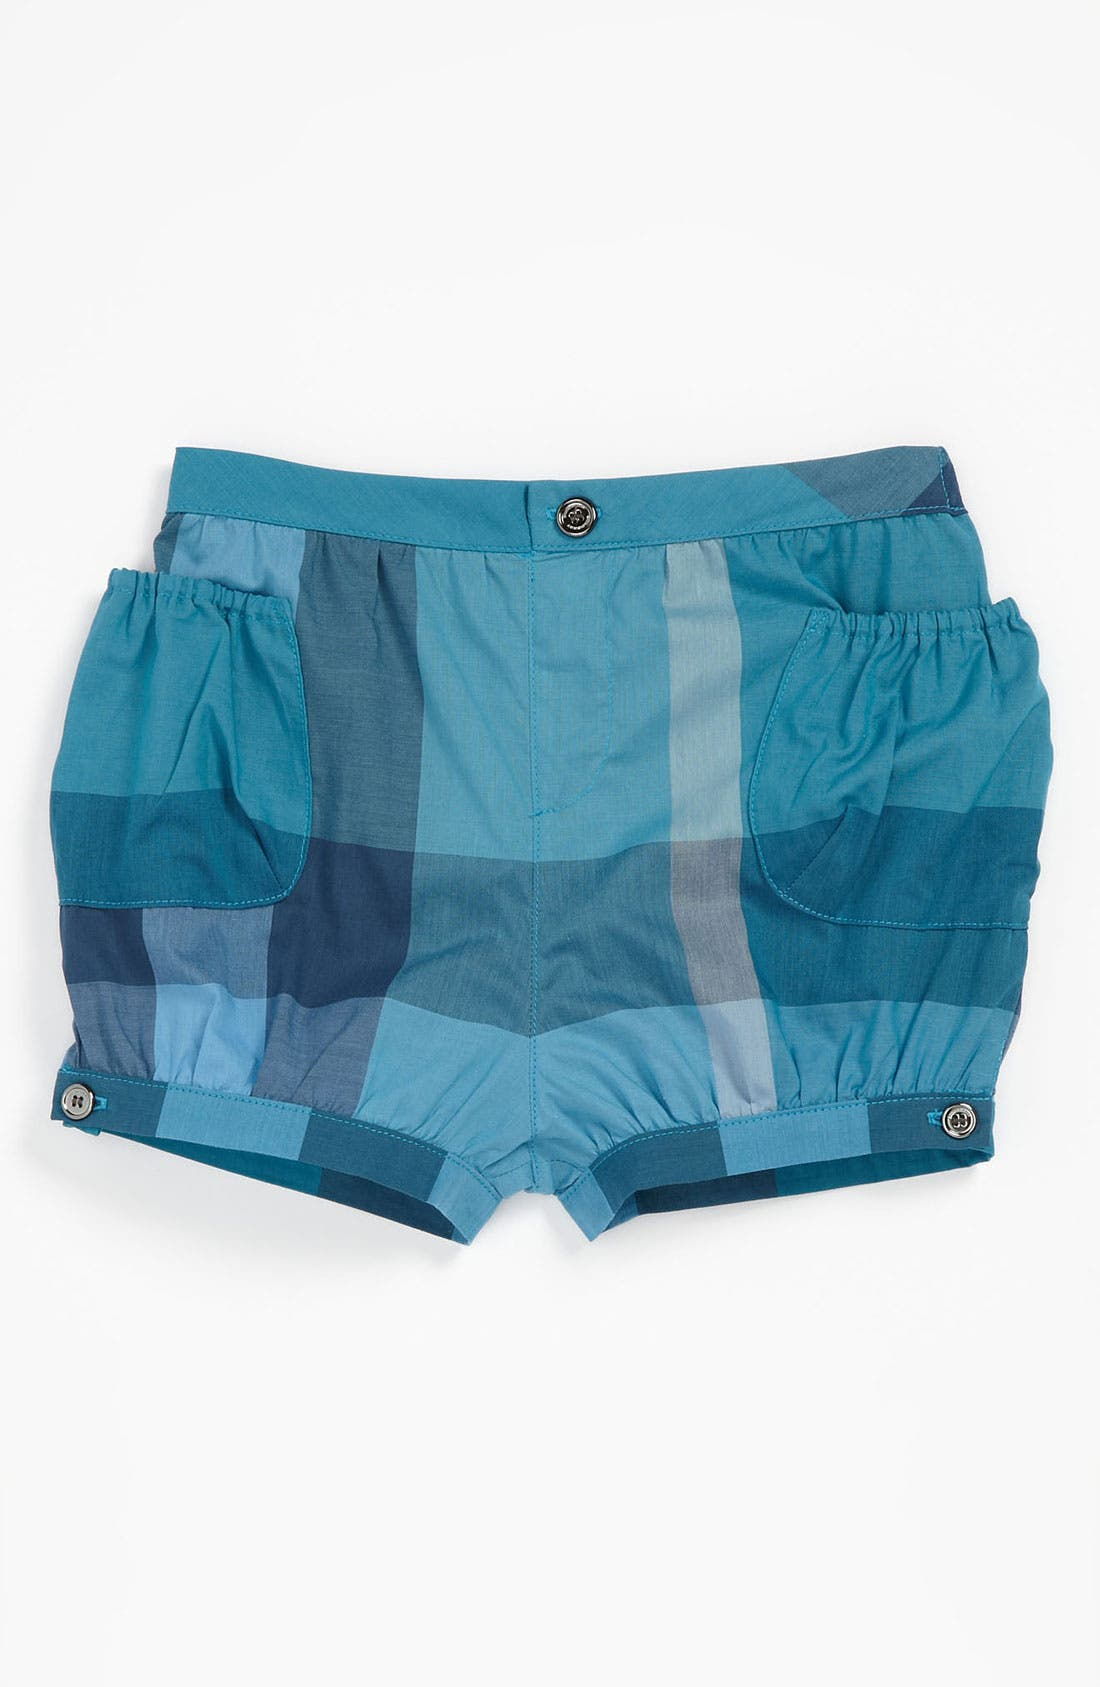 Main Image - Burberry 'Meghan' Shorts (Baby)